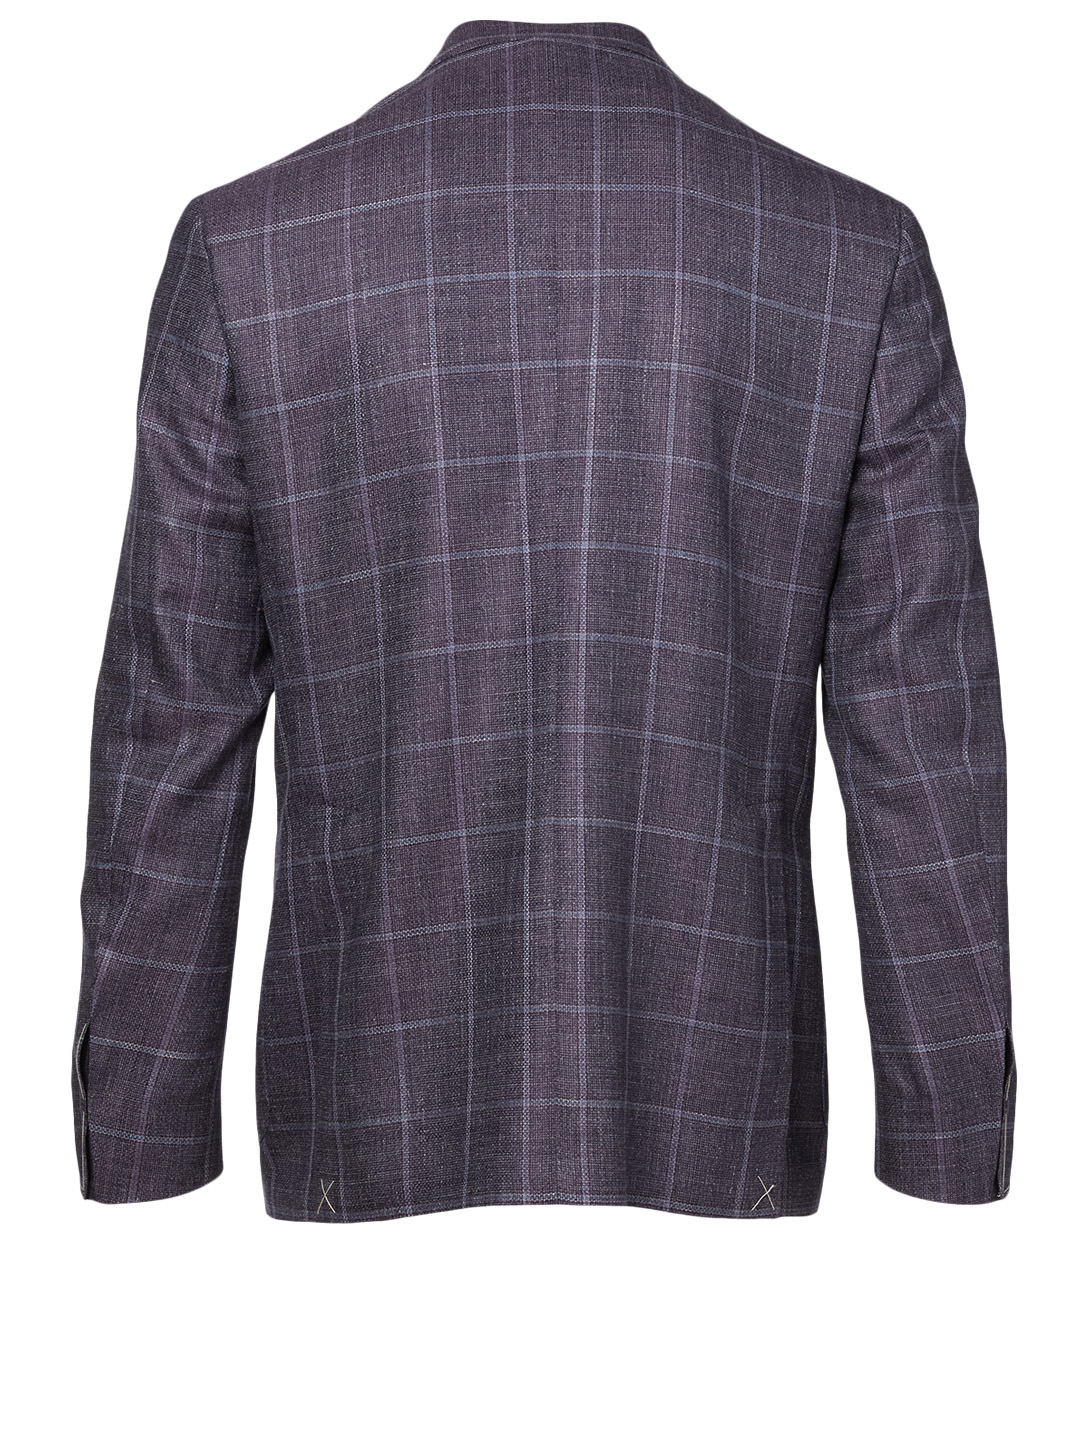 CANALI Wool And Silk Jacket In Check Print Men's Purple